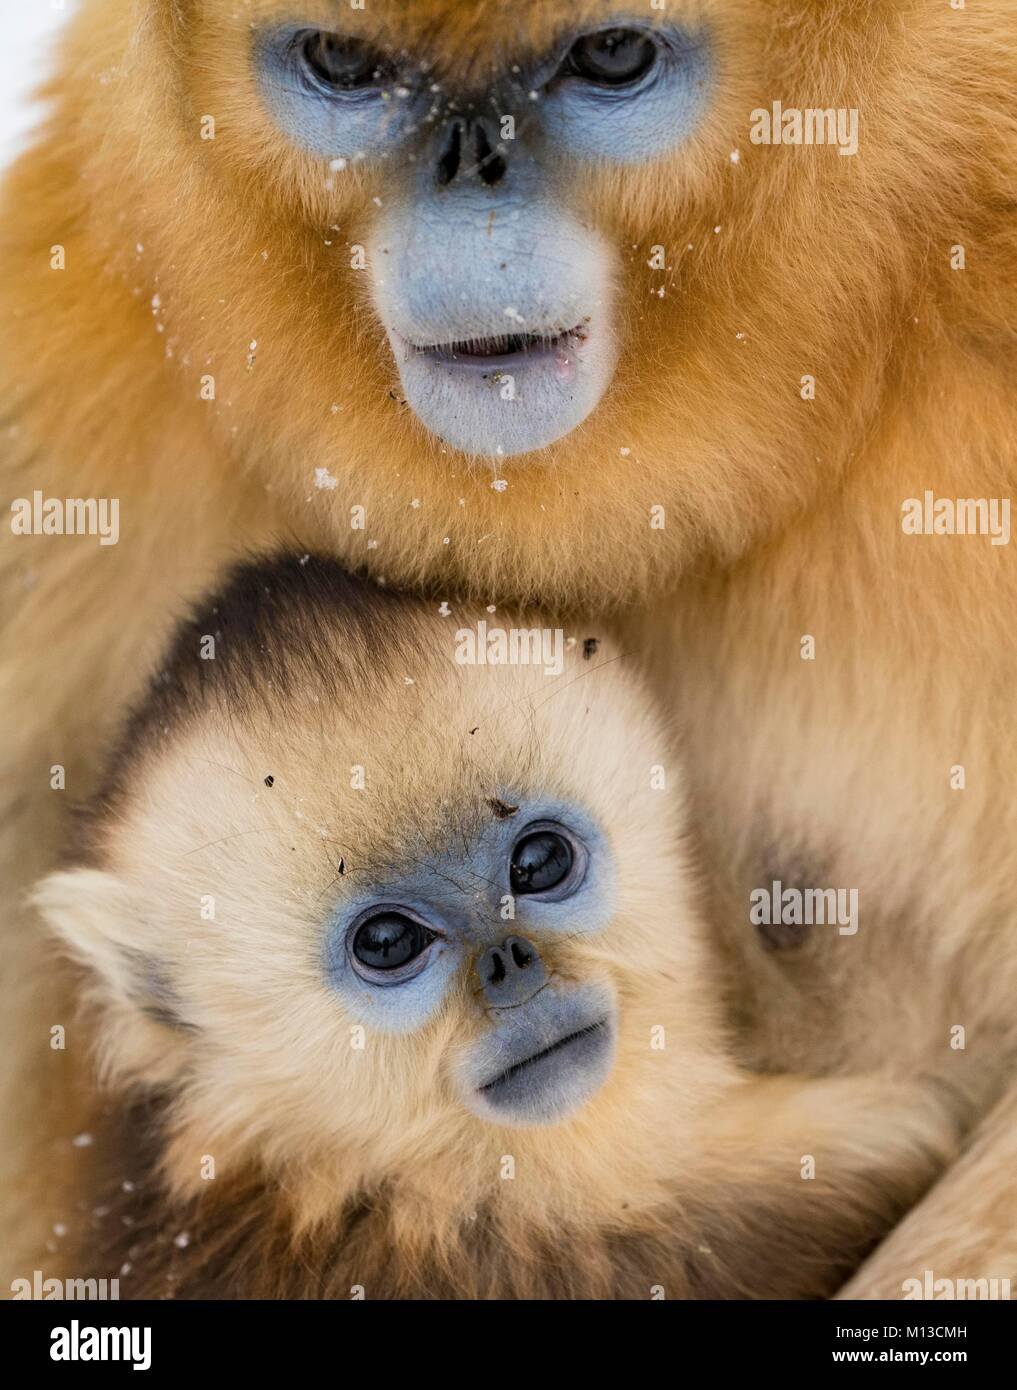 Beijing, China's Hubei Province. 26th Jan, 2018. Golden monkeys are seen at a conservation base in Shennongjia, - Stock Image